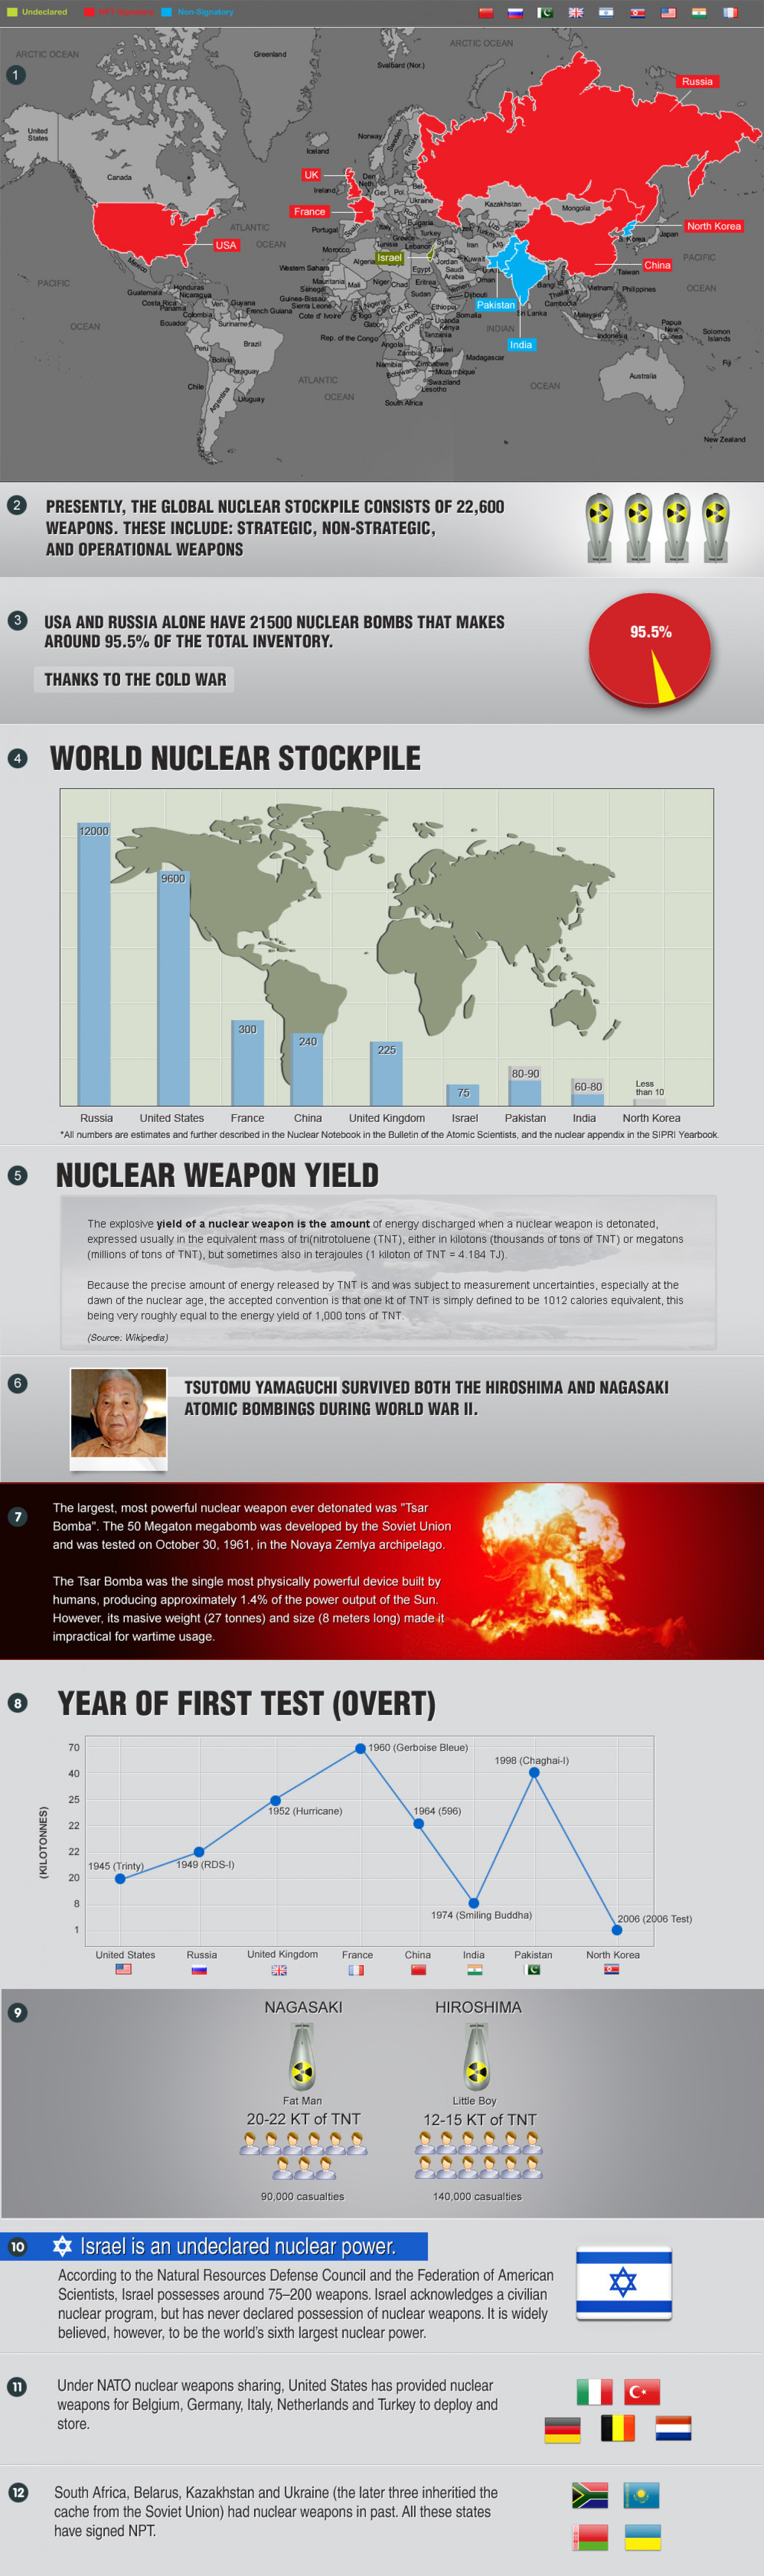 nuclear weapons in war